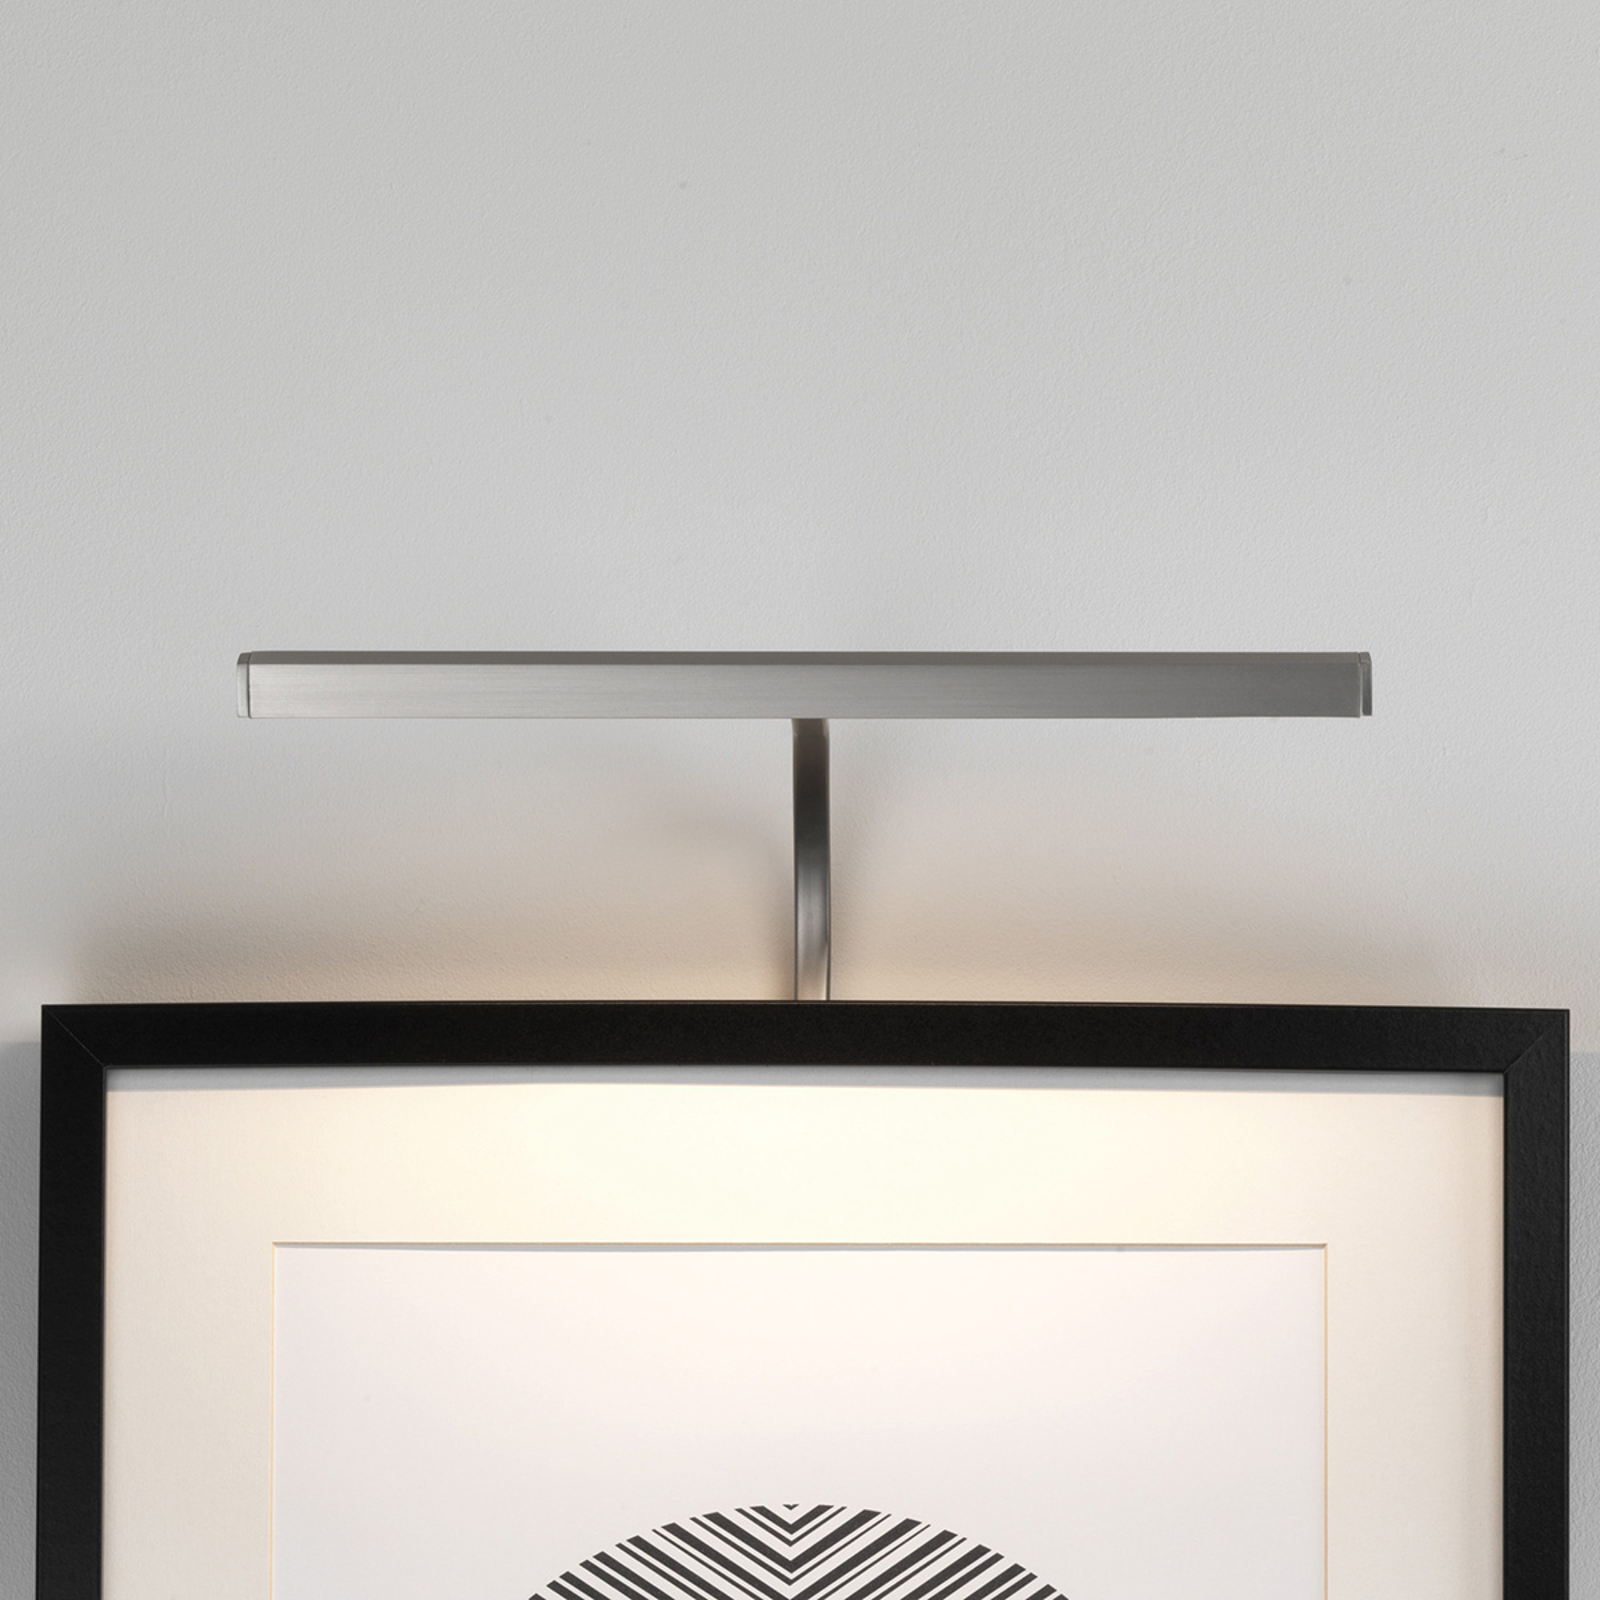 Astro Mondrian Frame Mounted applique nickel 30 cm